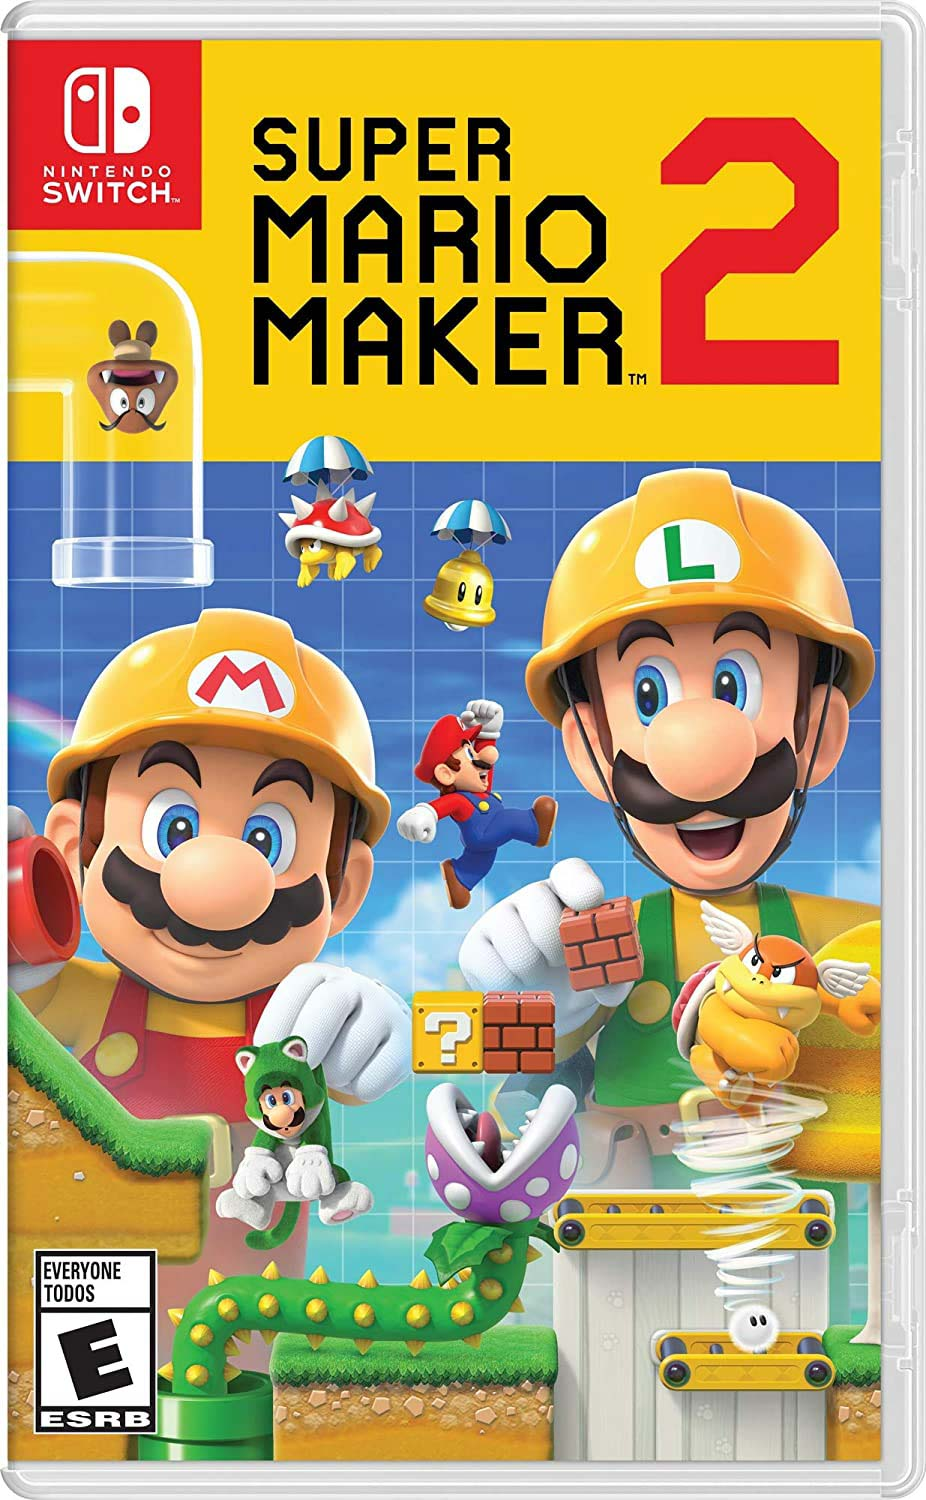 Super Mario Maker game cover